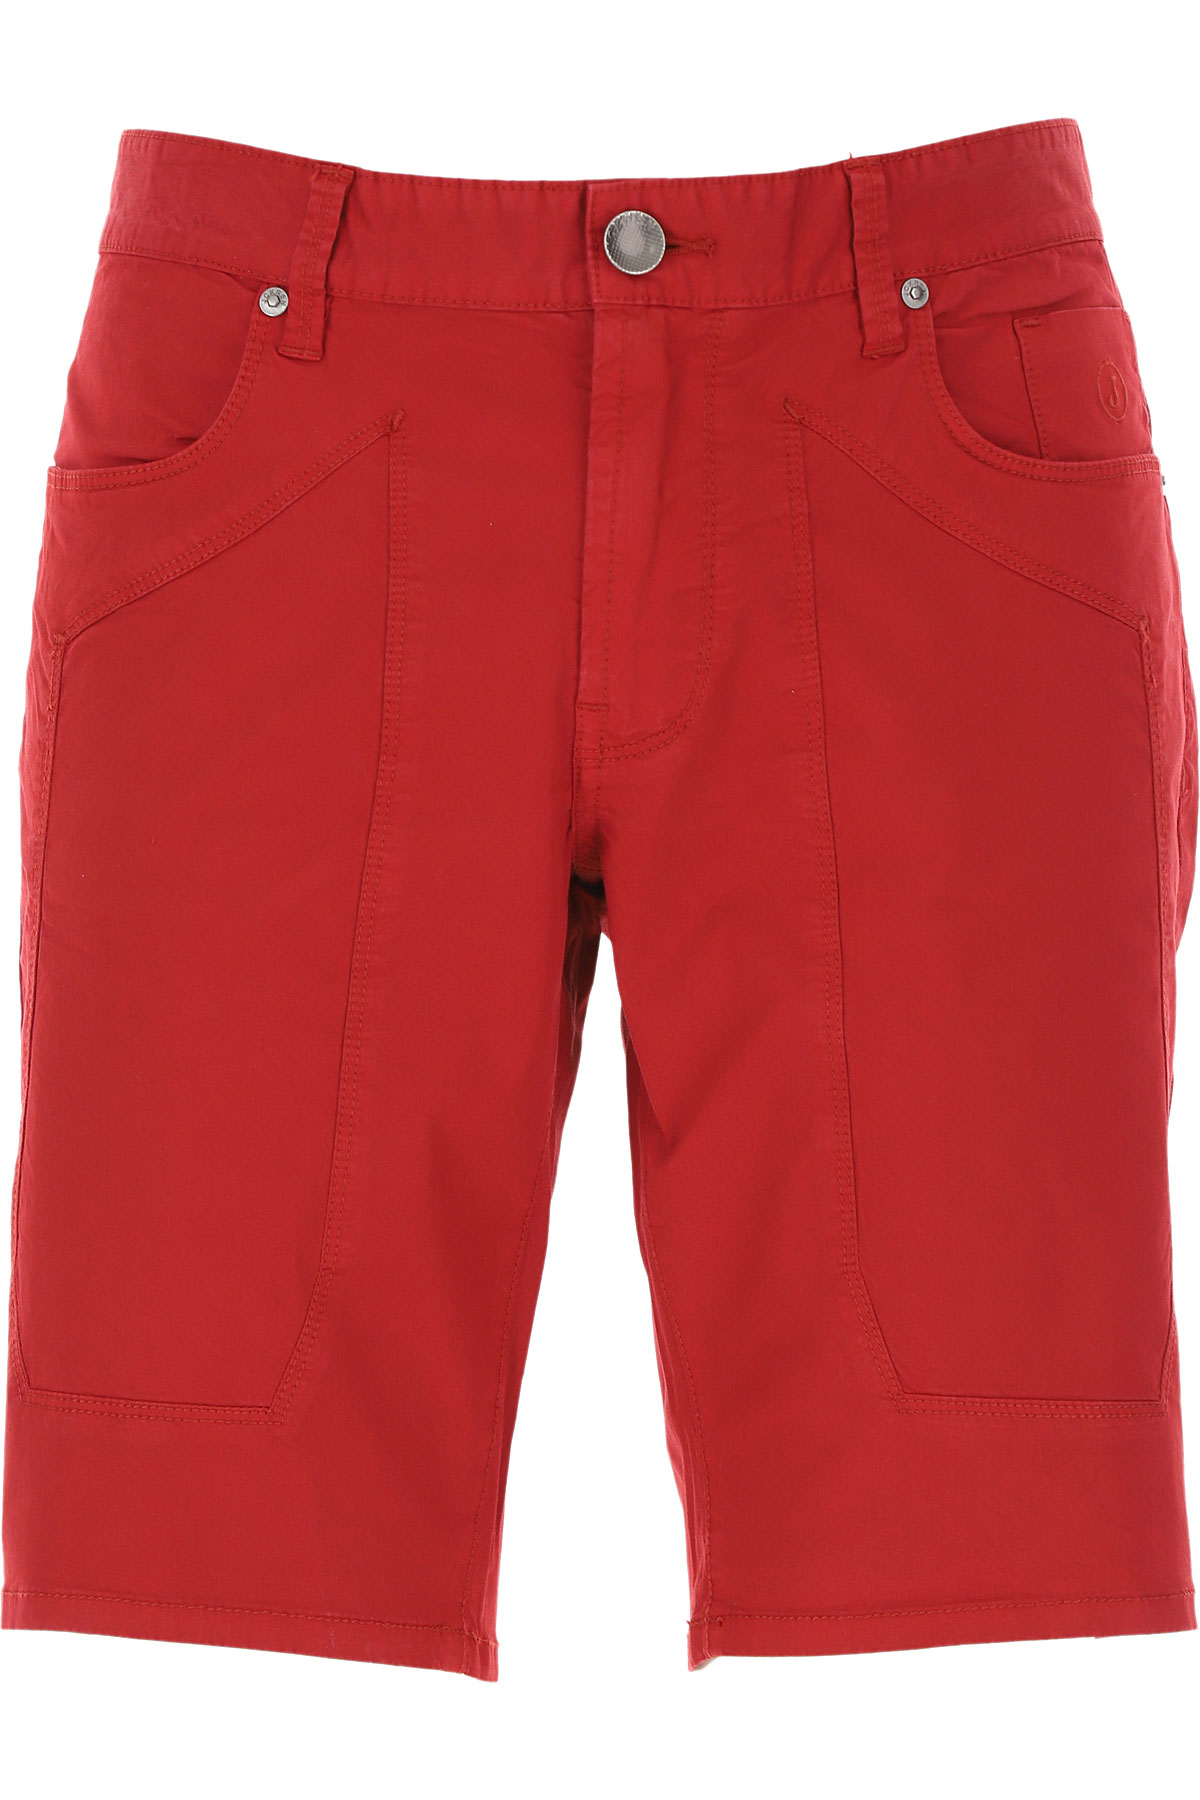 Jeckerson Shorts for Men On Sale, Red, Cotton, 2019, 30 31 32 35 36